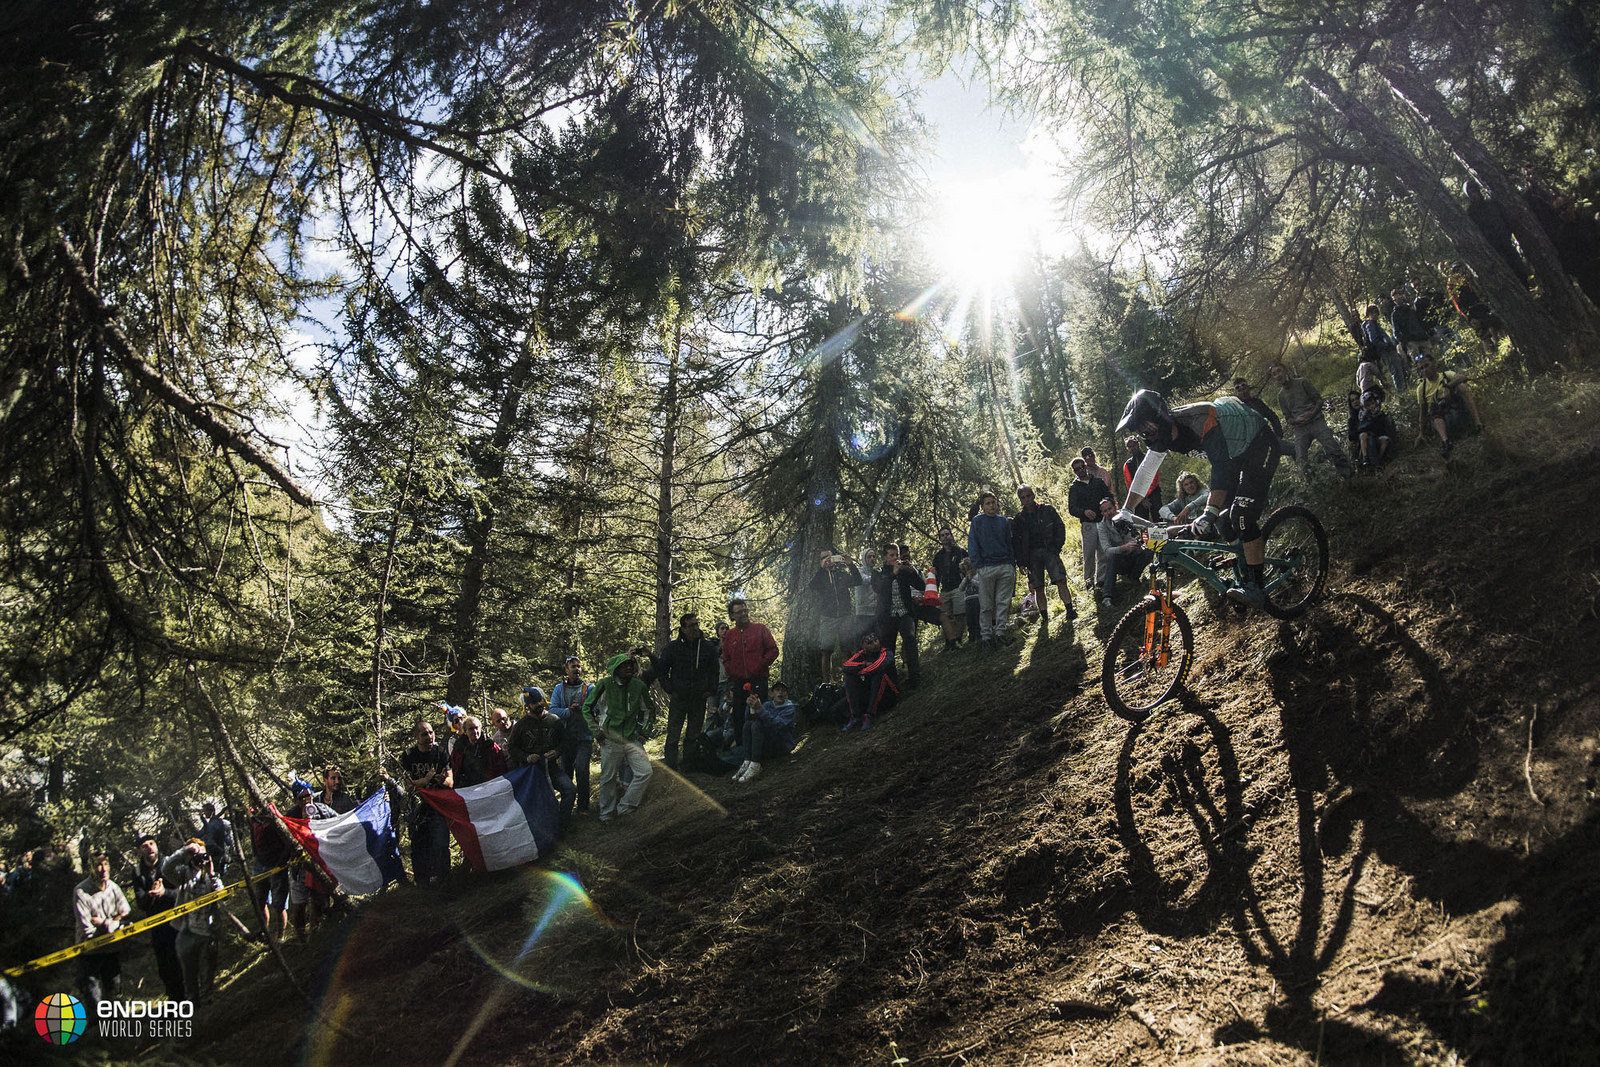 Enthusiastic crowds turned up to watch Richie Rude maintain his place atop the overall standings with one race to go.